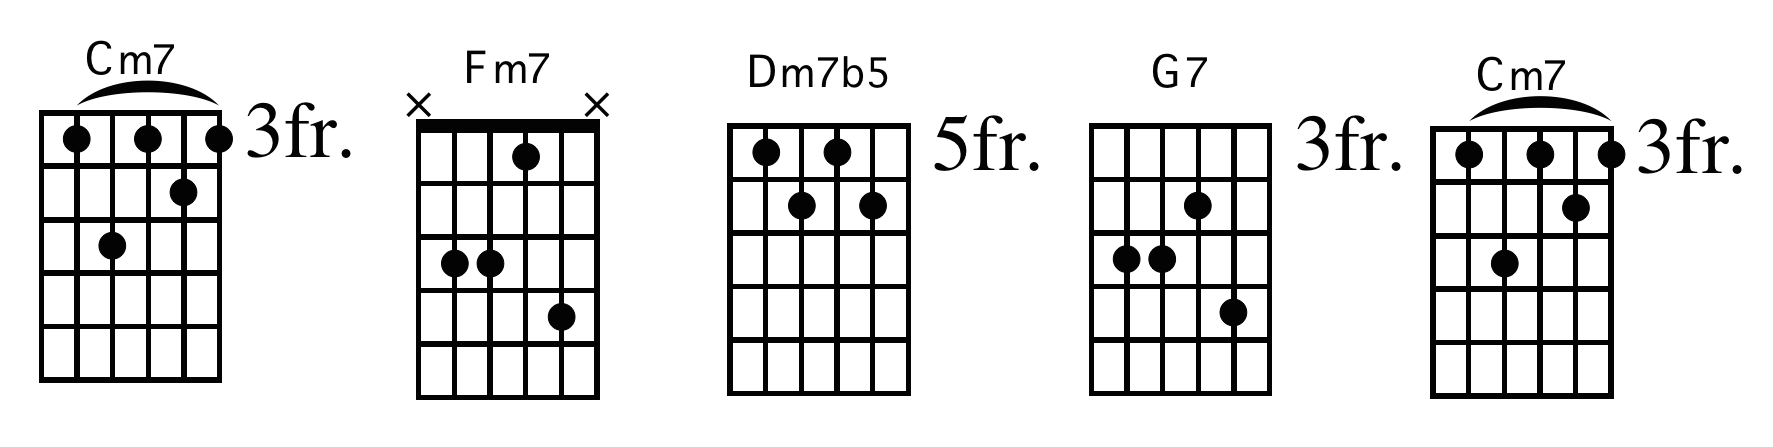 jazz-guitar-practice-routine_3.png